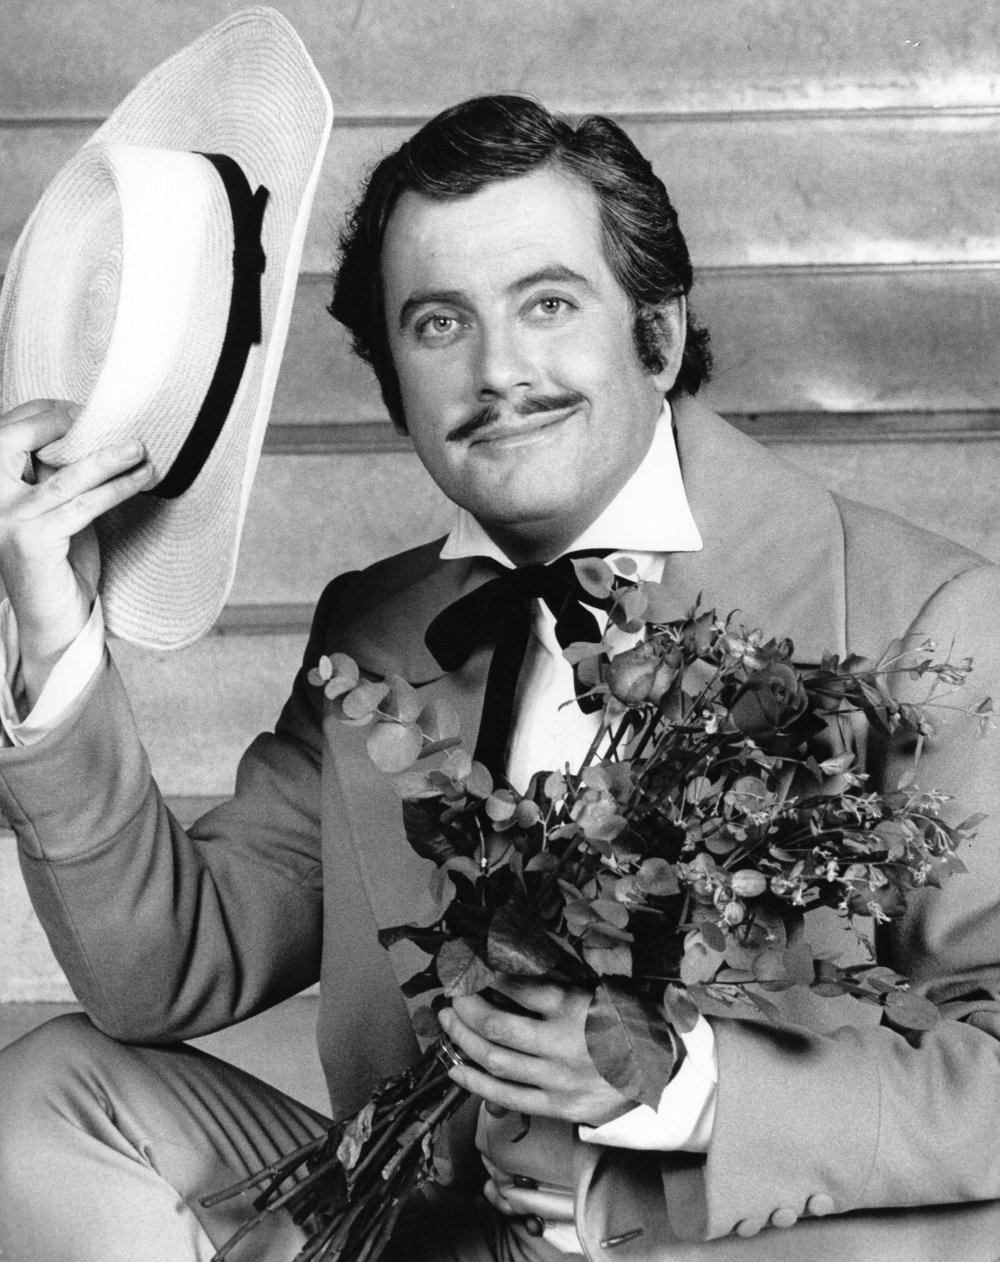 Gyles Brandreth as Rhett Butler, TV-am, 1987